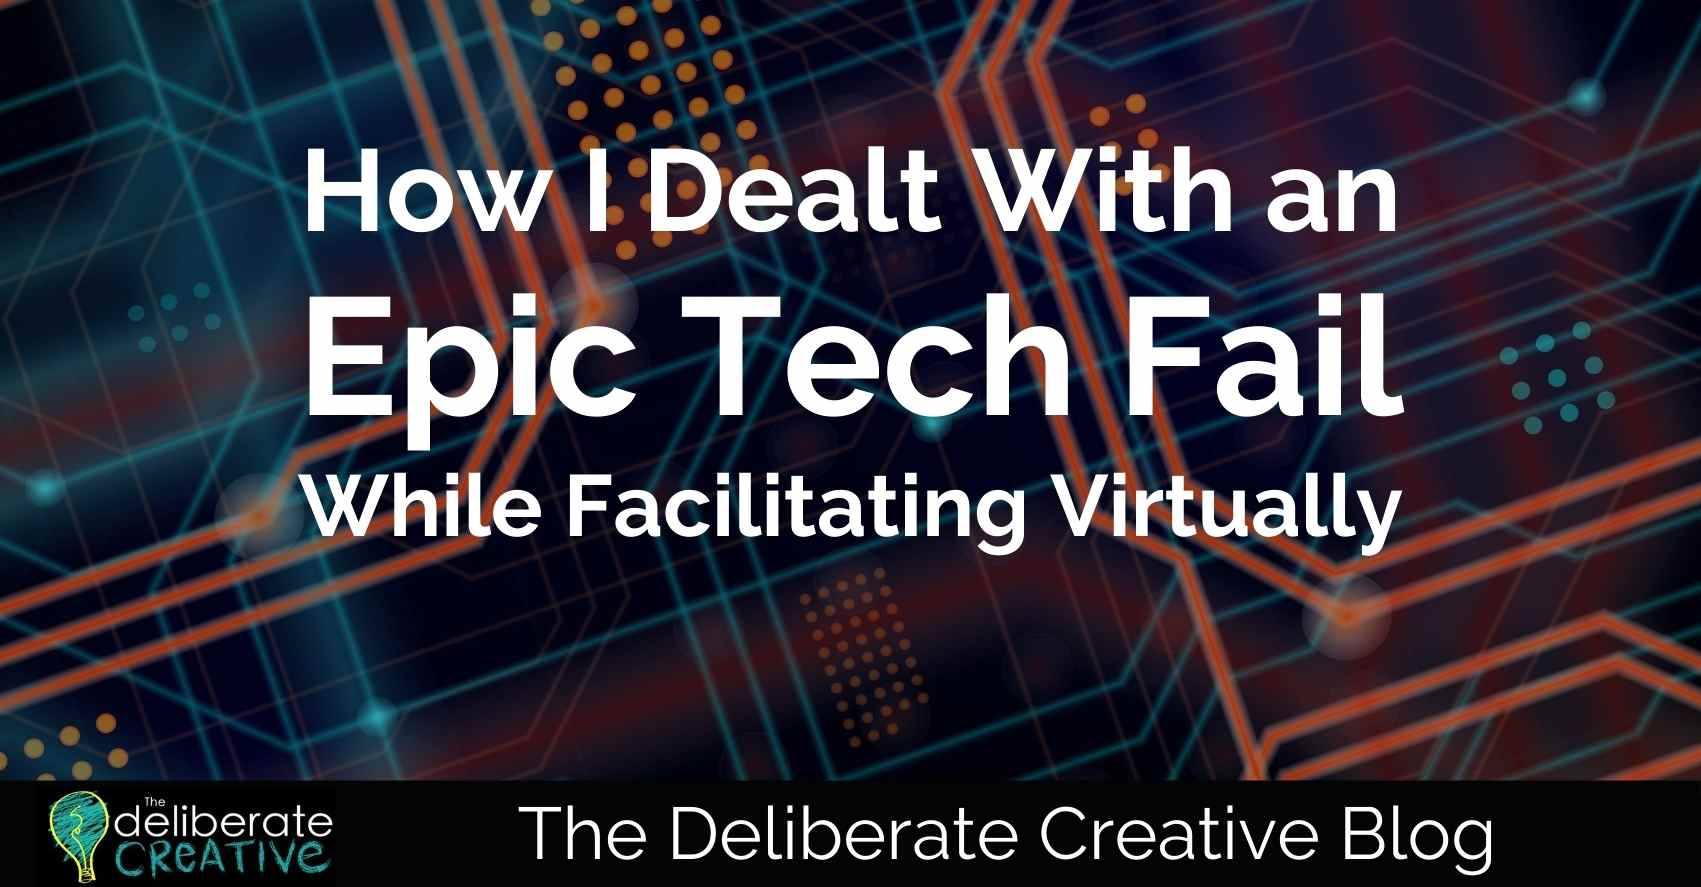 The Deliberate Creative Blog: An Epic Tech Fail While Facilitating Virtually